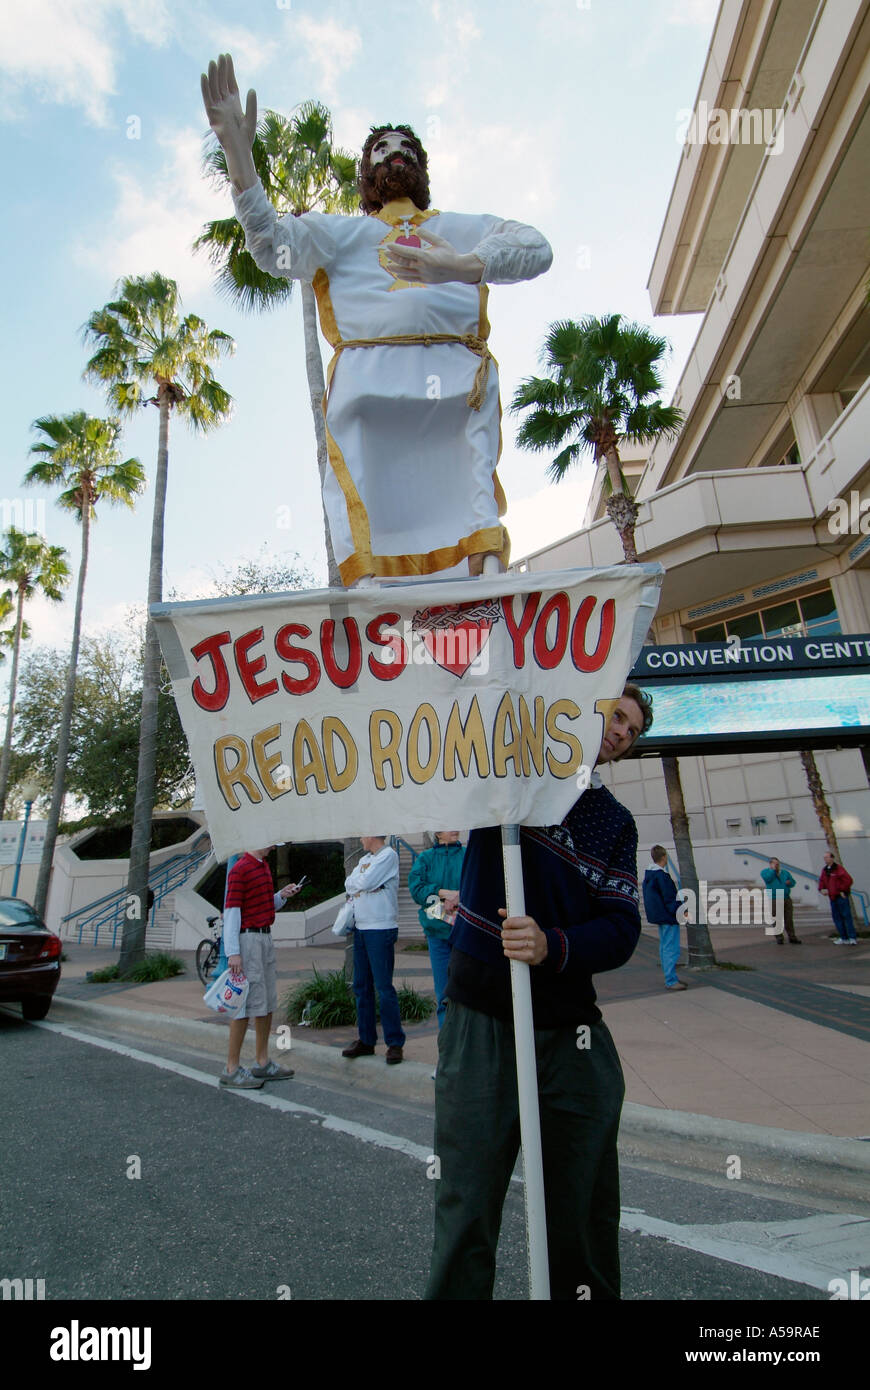 Jusus loves you message on sign of male demonstrator in front of the Tampa Florida Convention Center - Stock Image